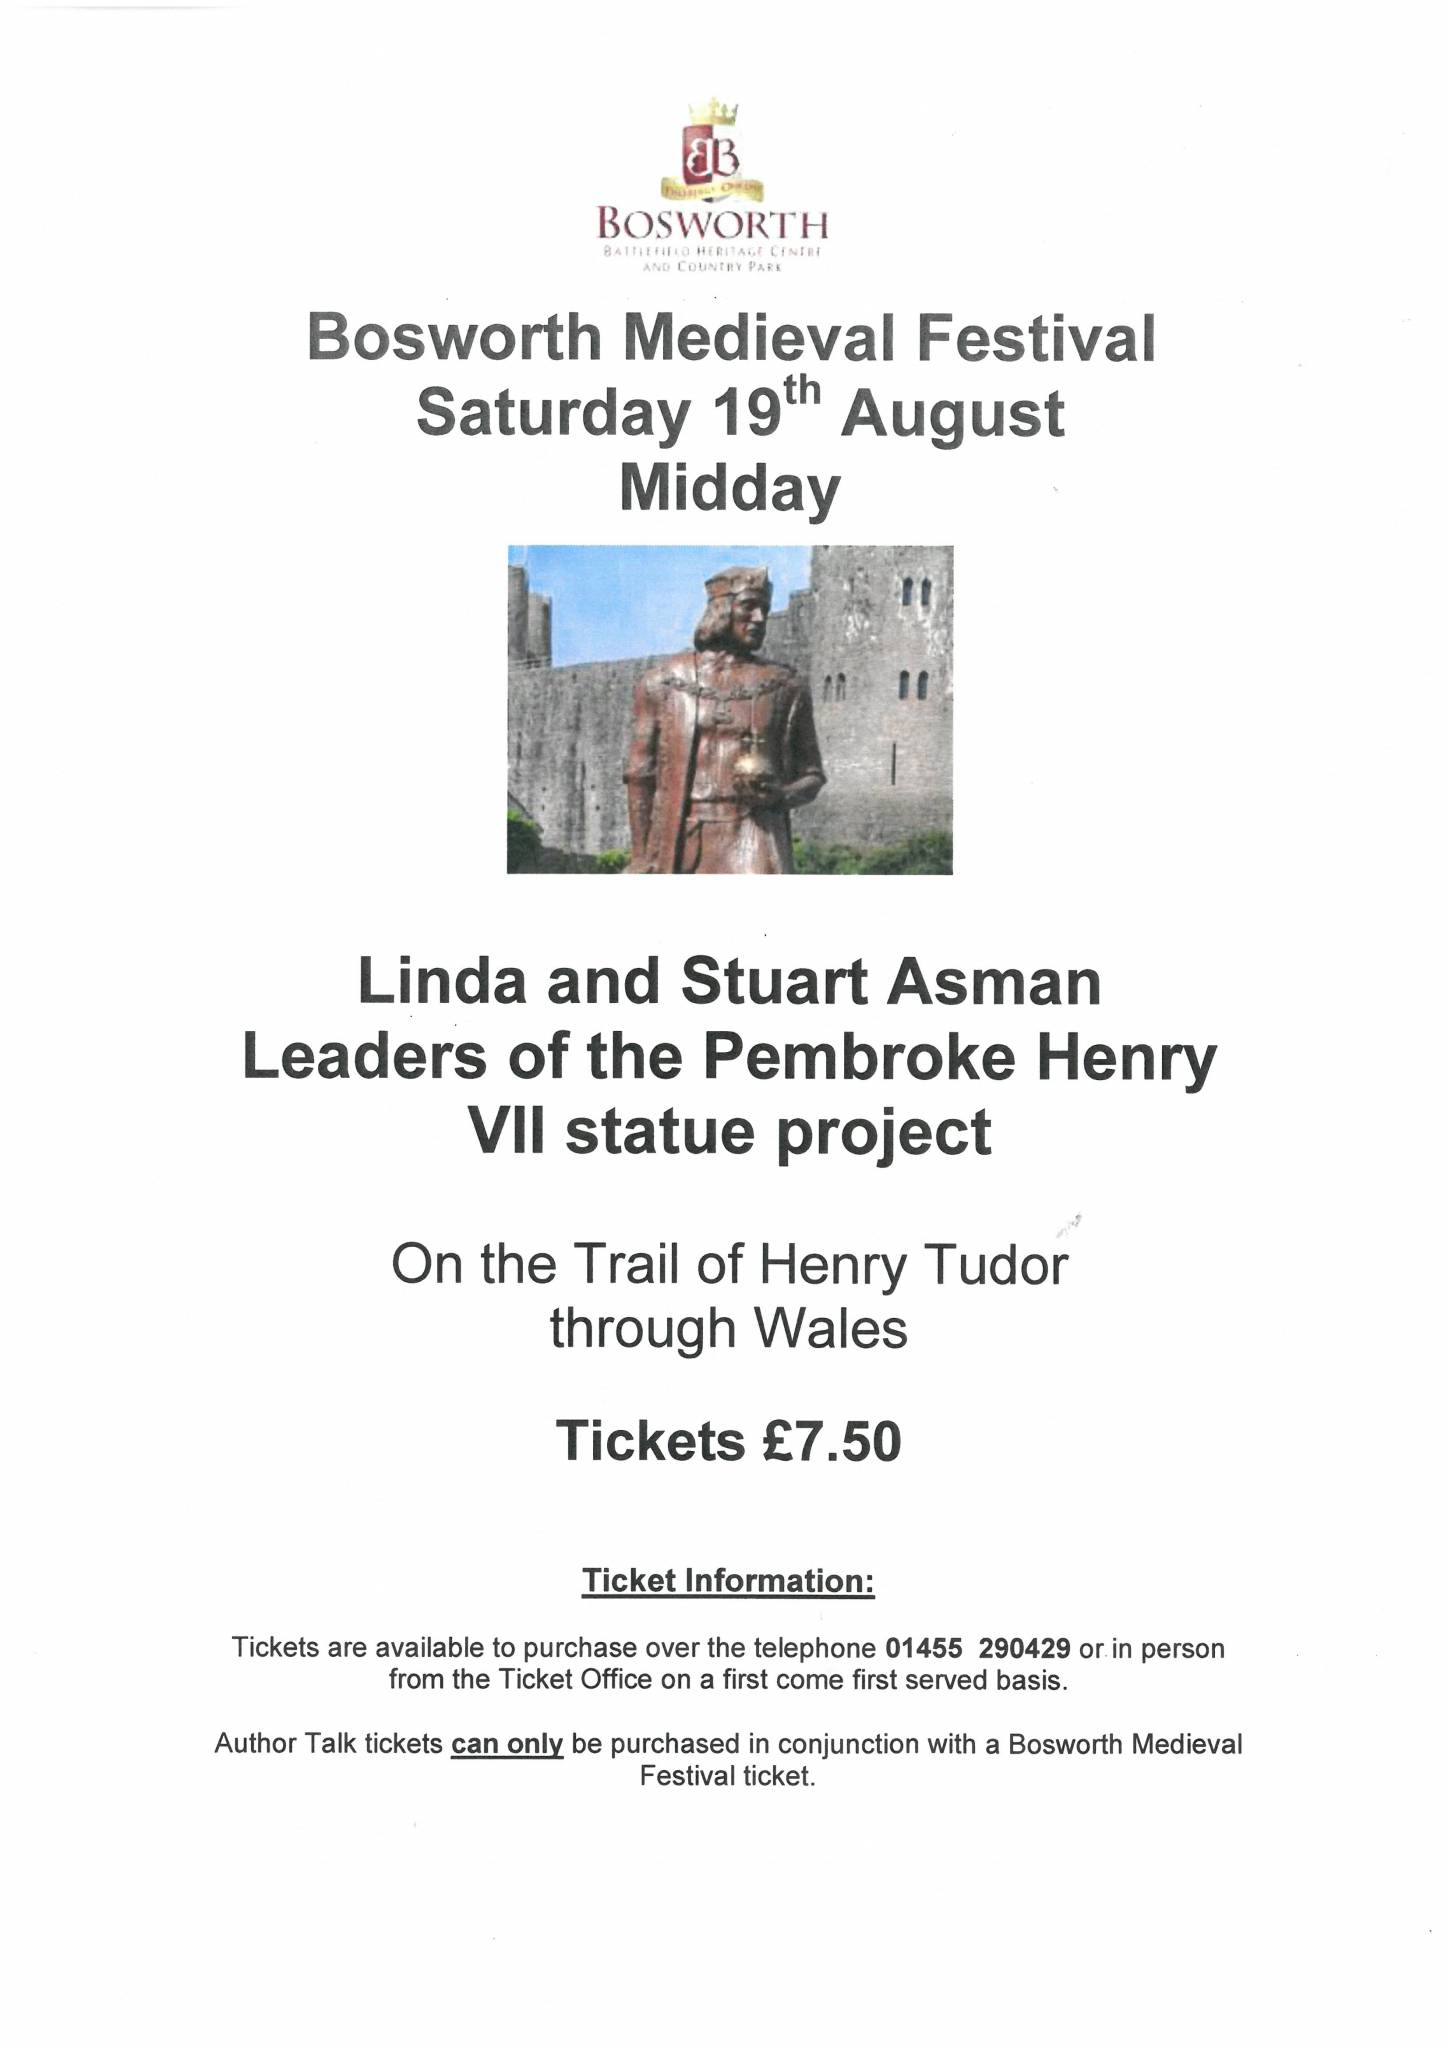 The Trail of Henry Tudor through Wales